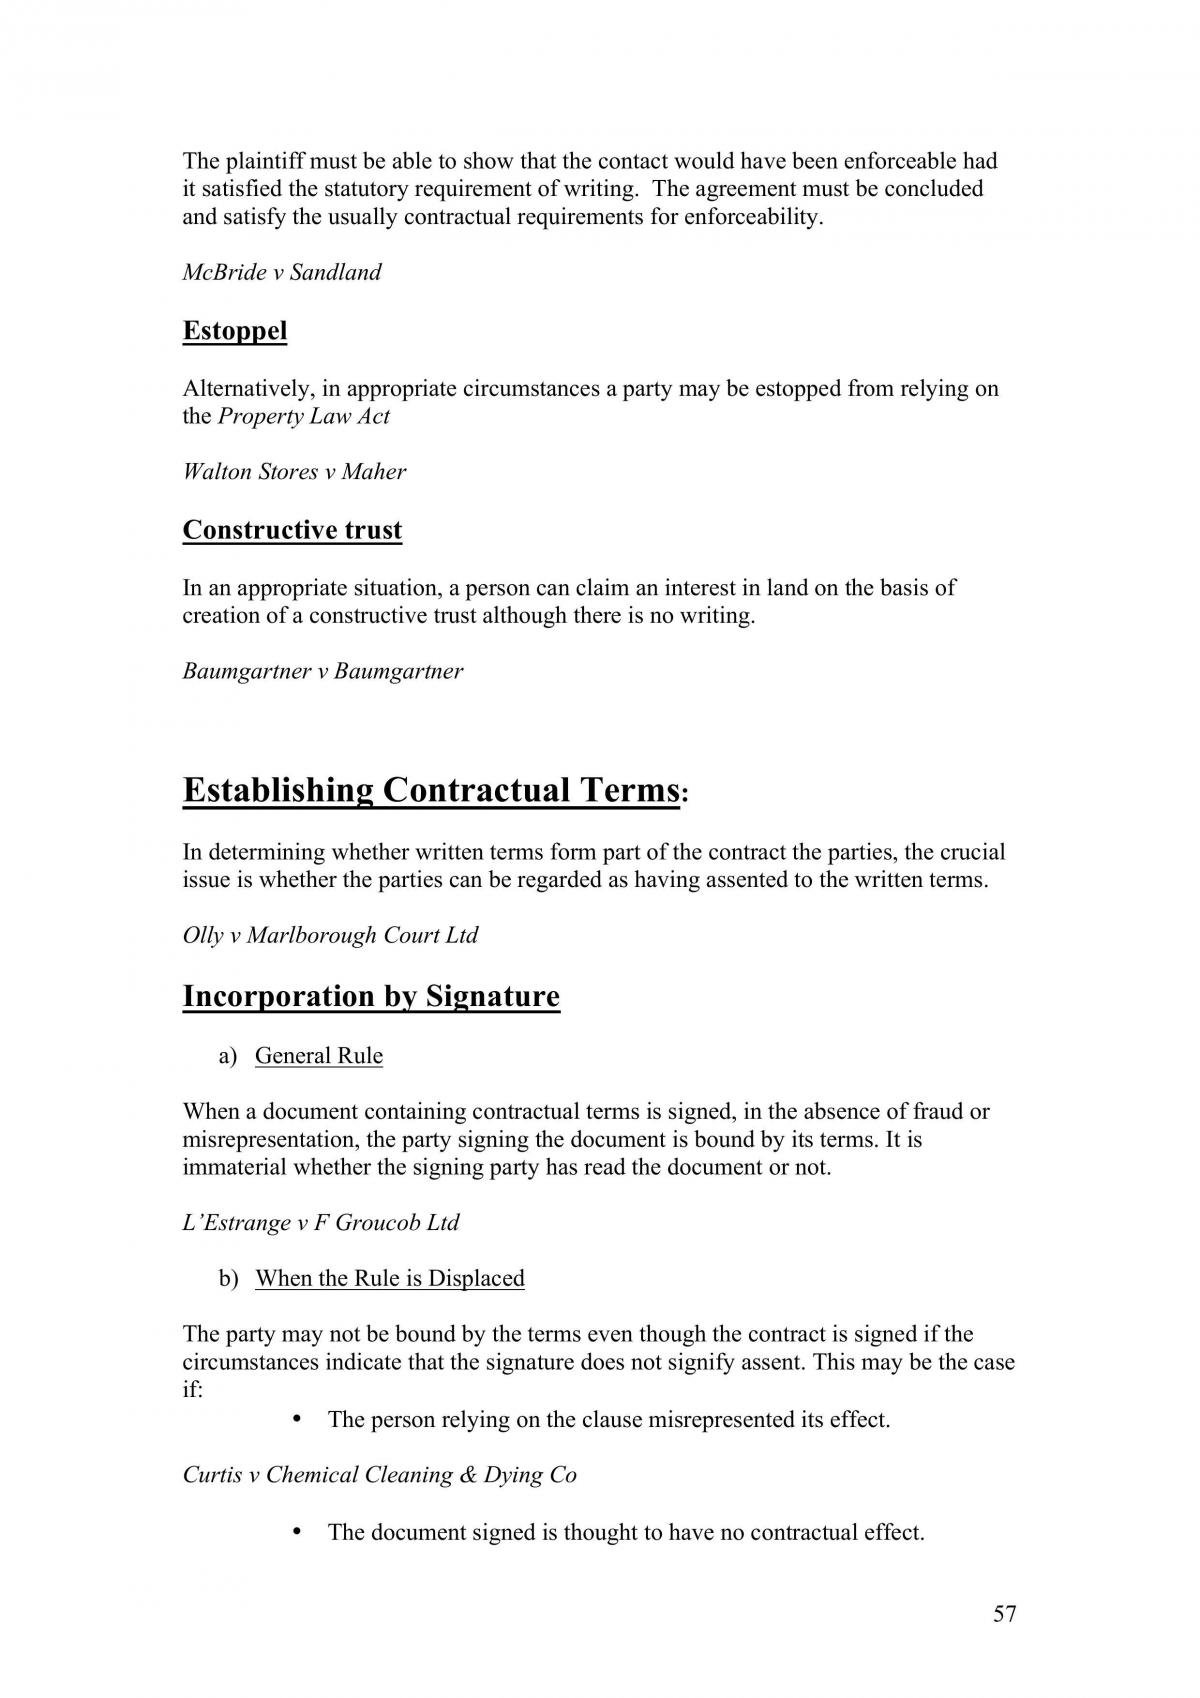 Complete Contracts Notes  - Page 57